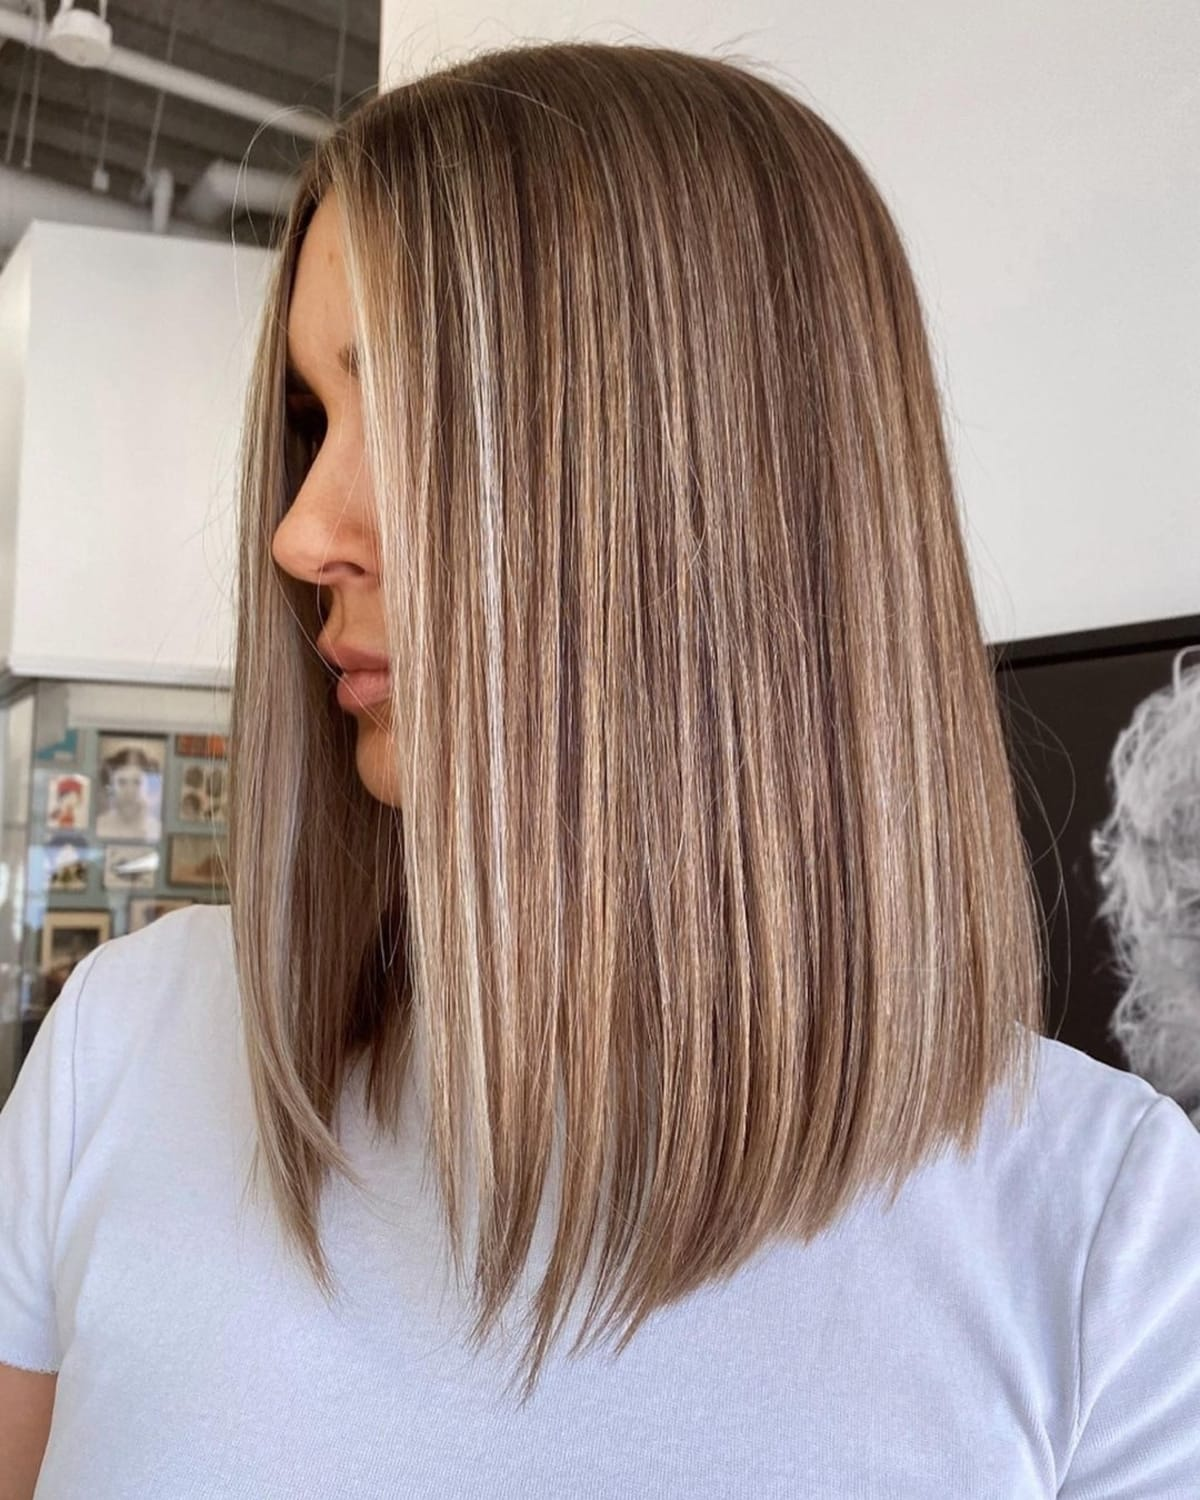 28 Volume-Boosting Medium Length Hairstyles for Thin and Fine Hair